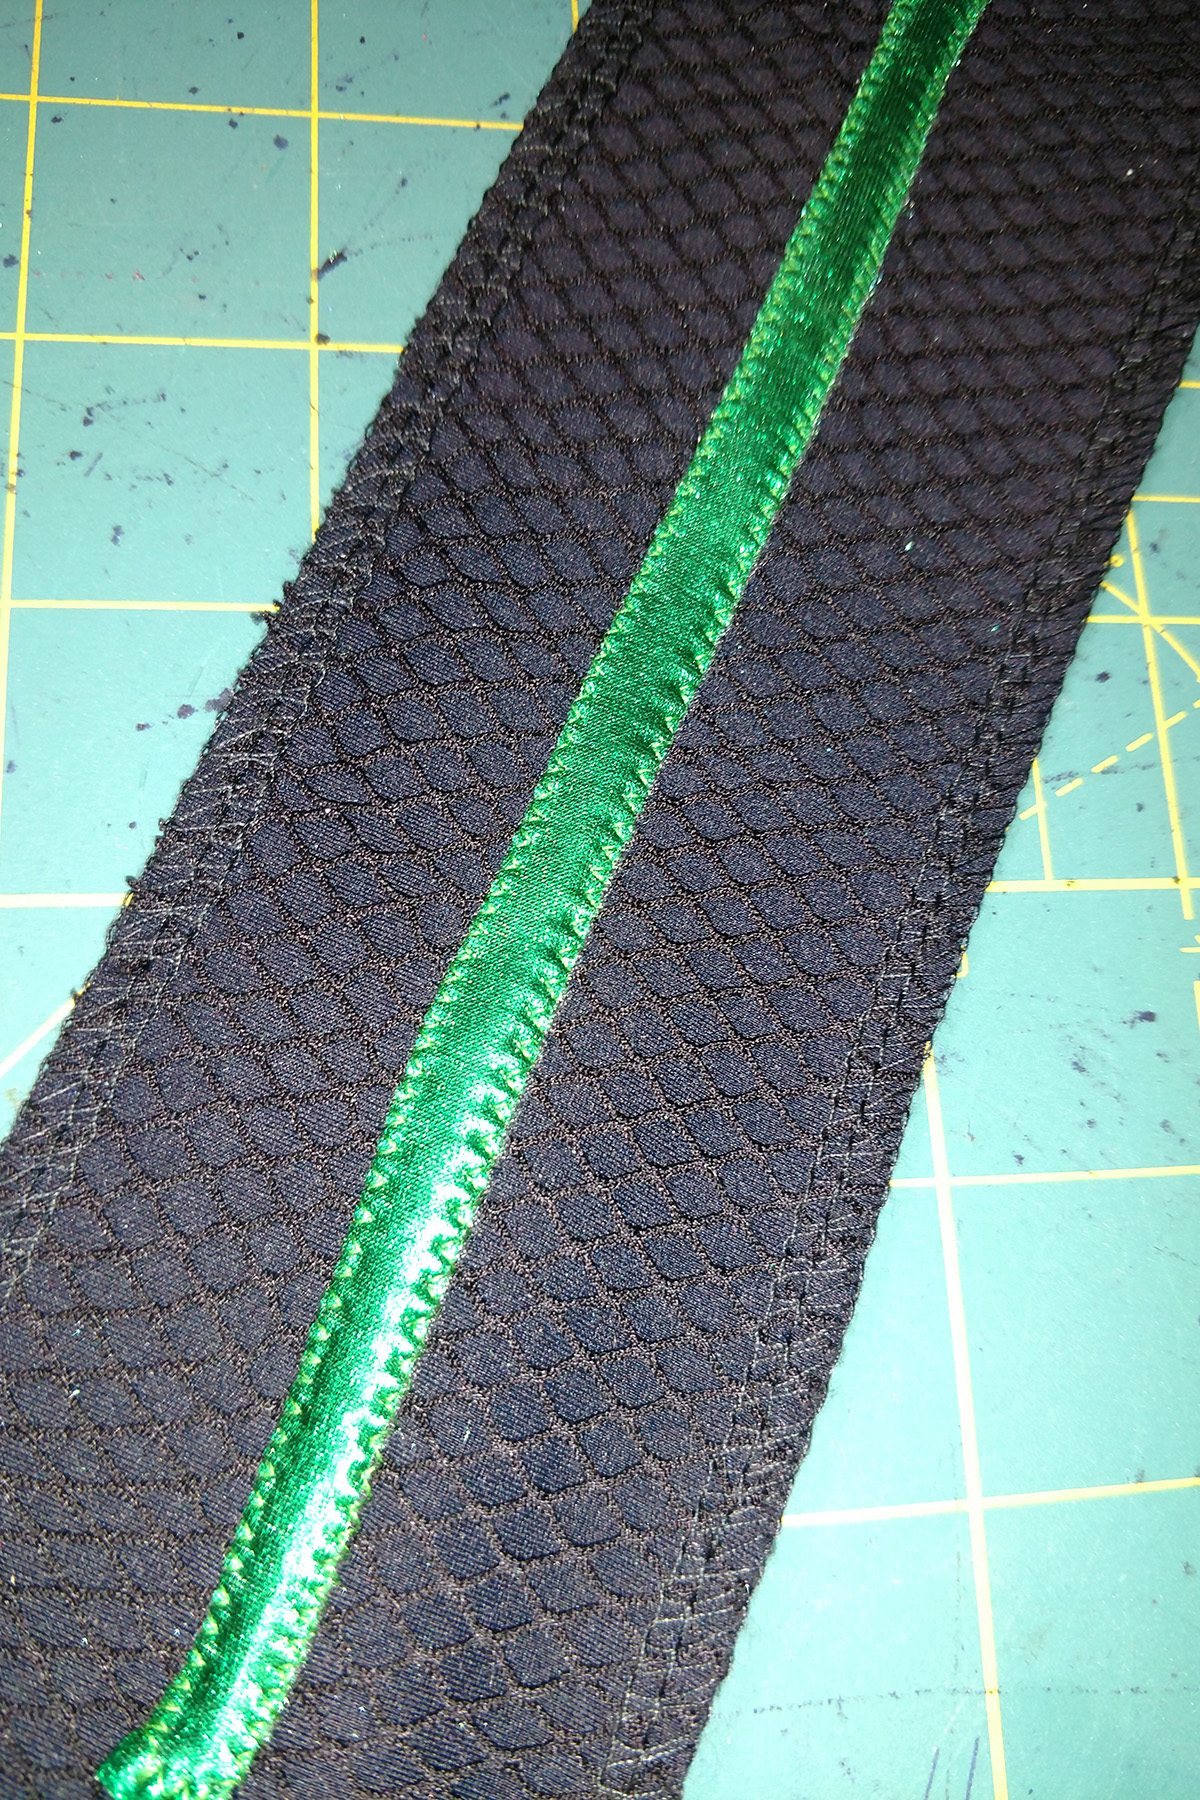 A strip of textured black fabric with a line of metallic green spandex stitched down on it.